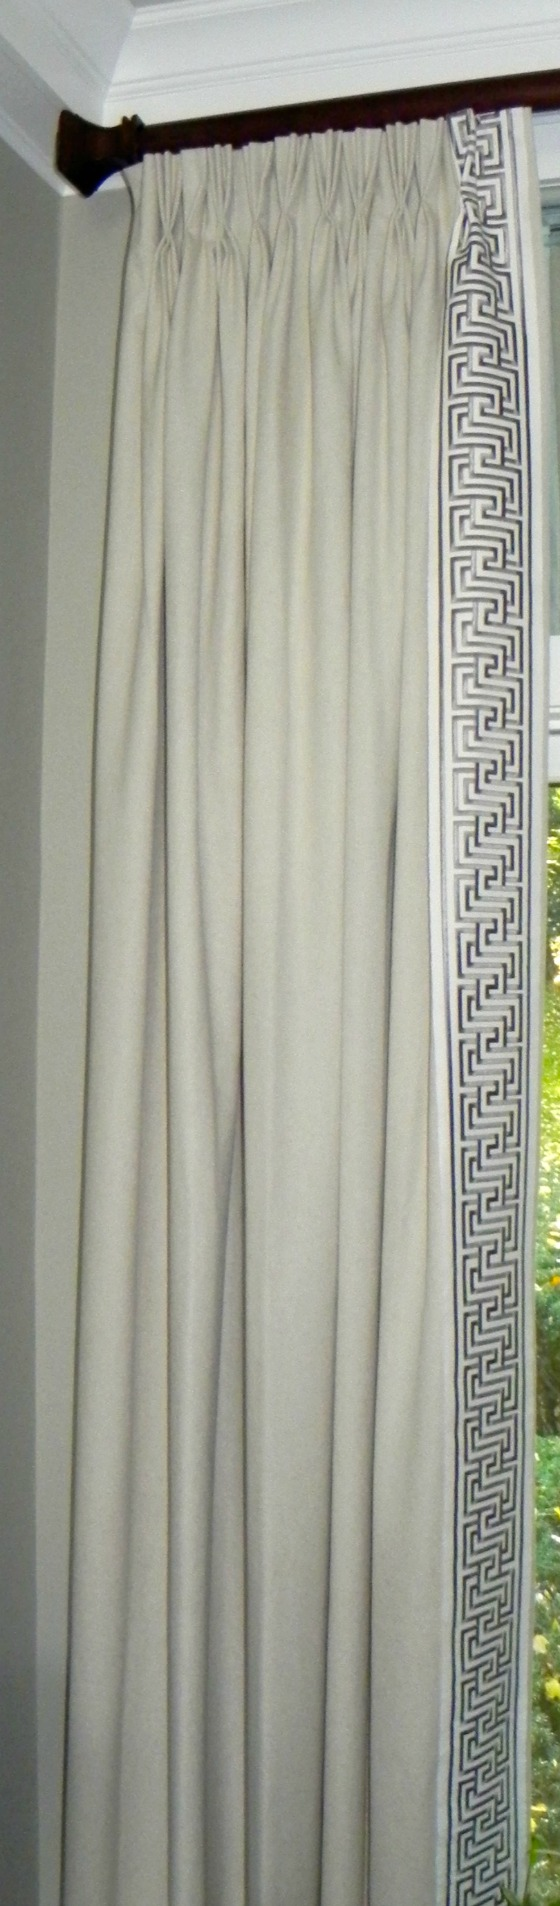 Trimmed drapery panel